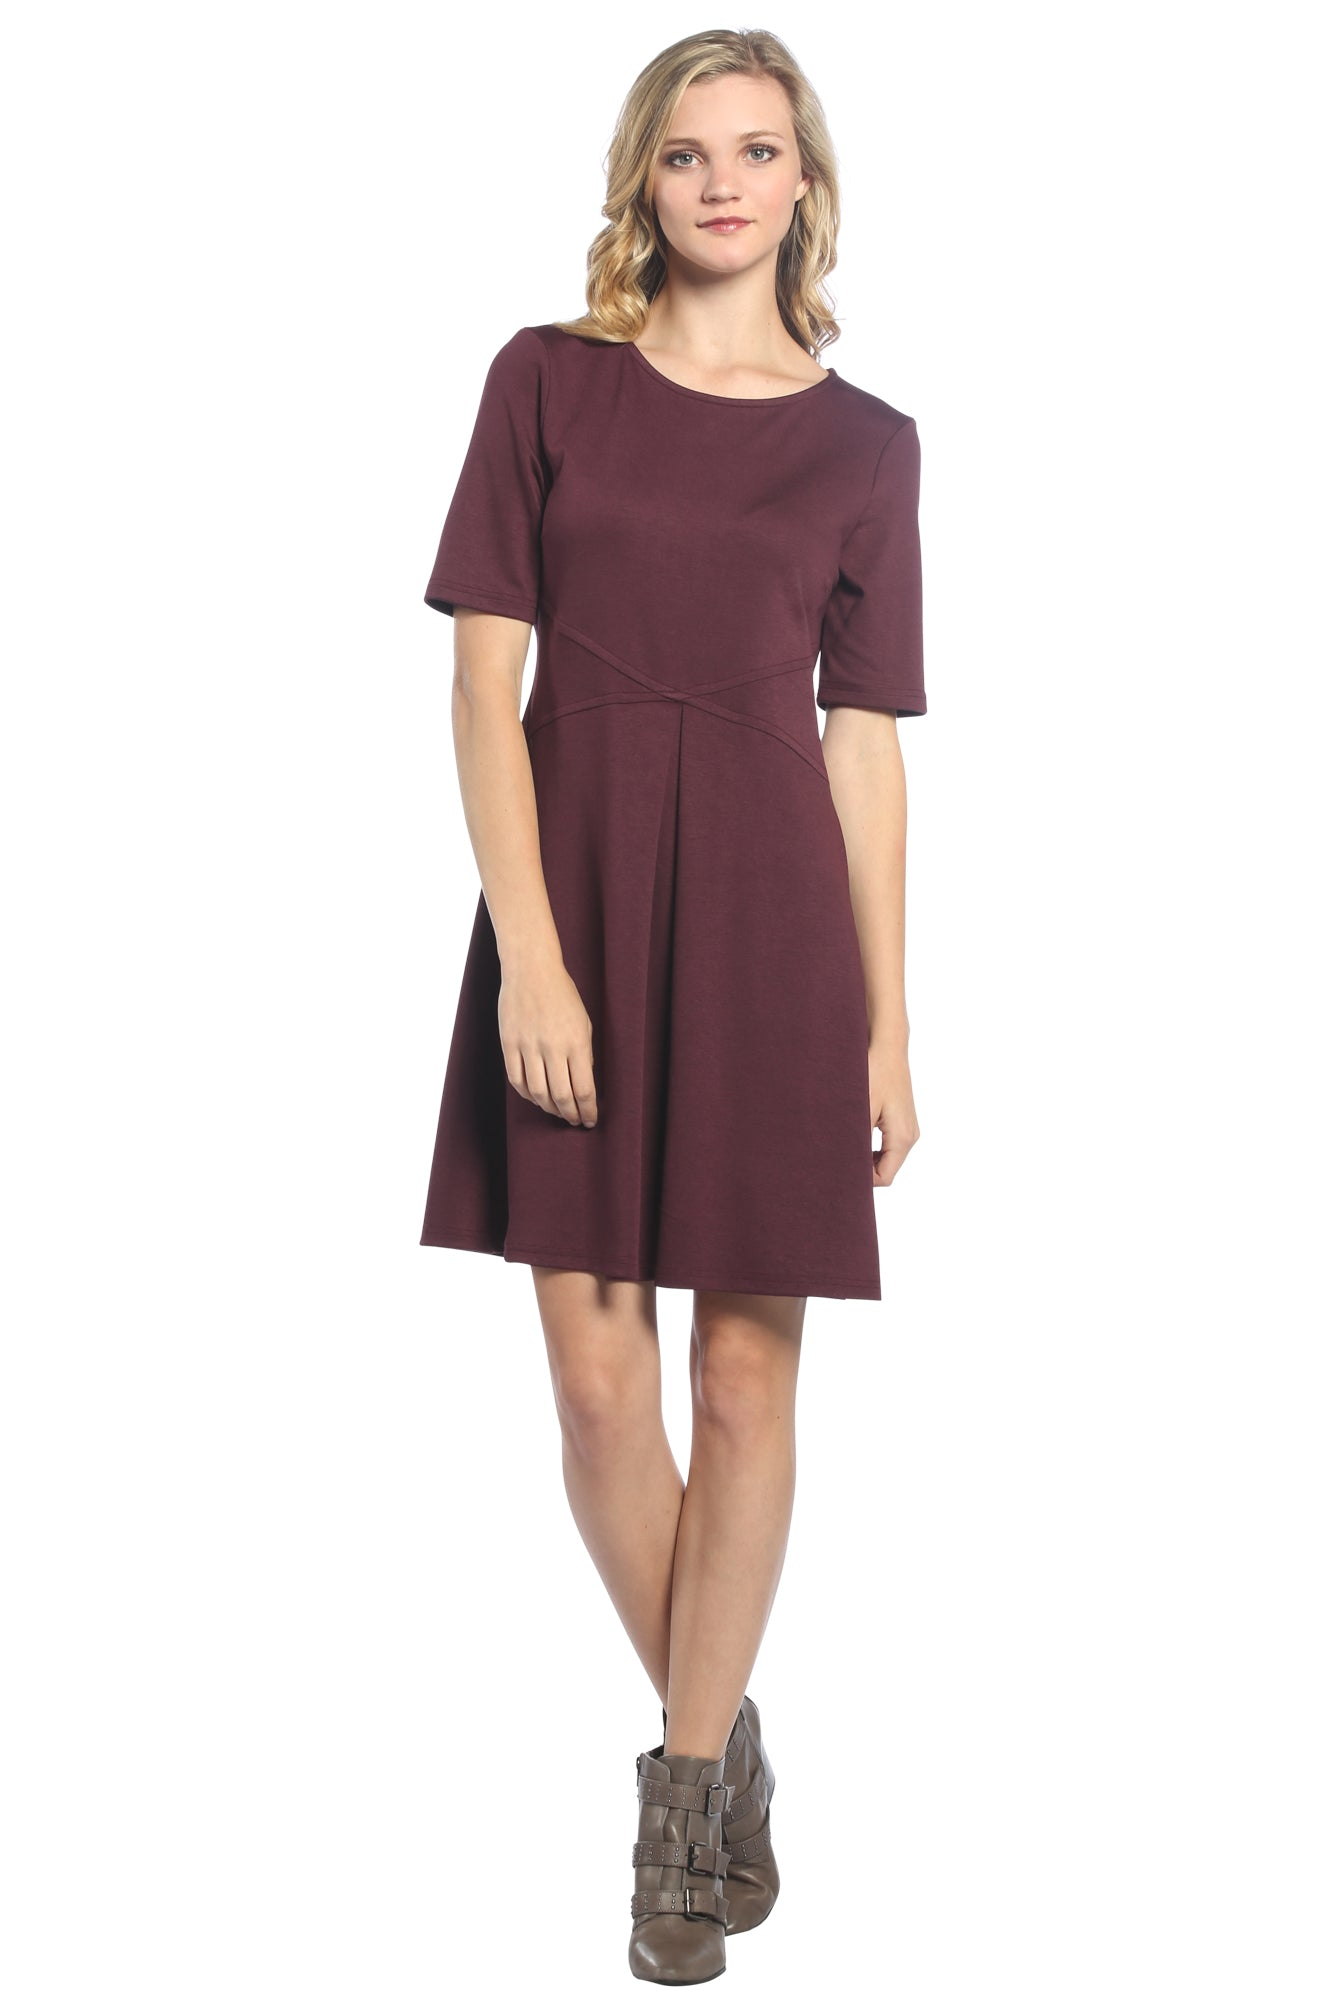 Inverted Pleat Fit and Flare Dress in Plum